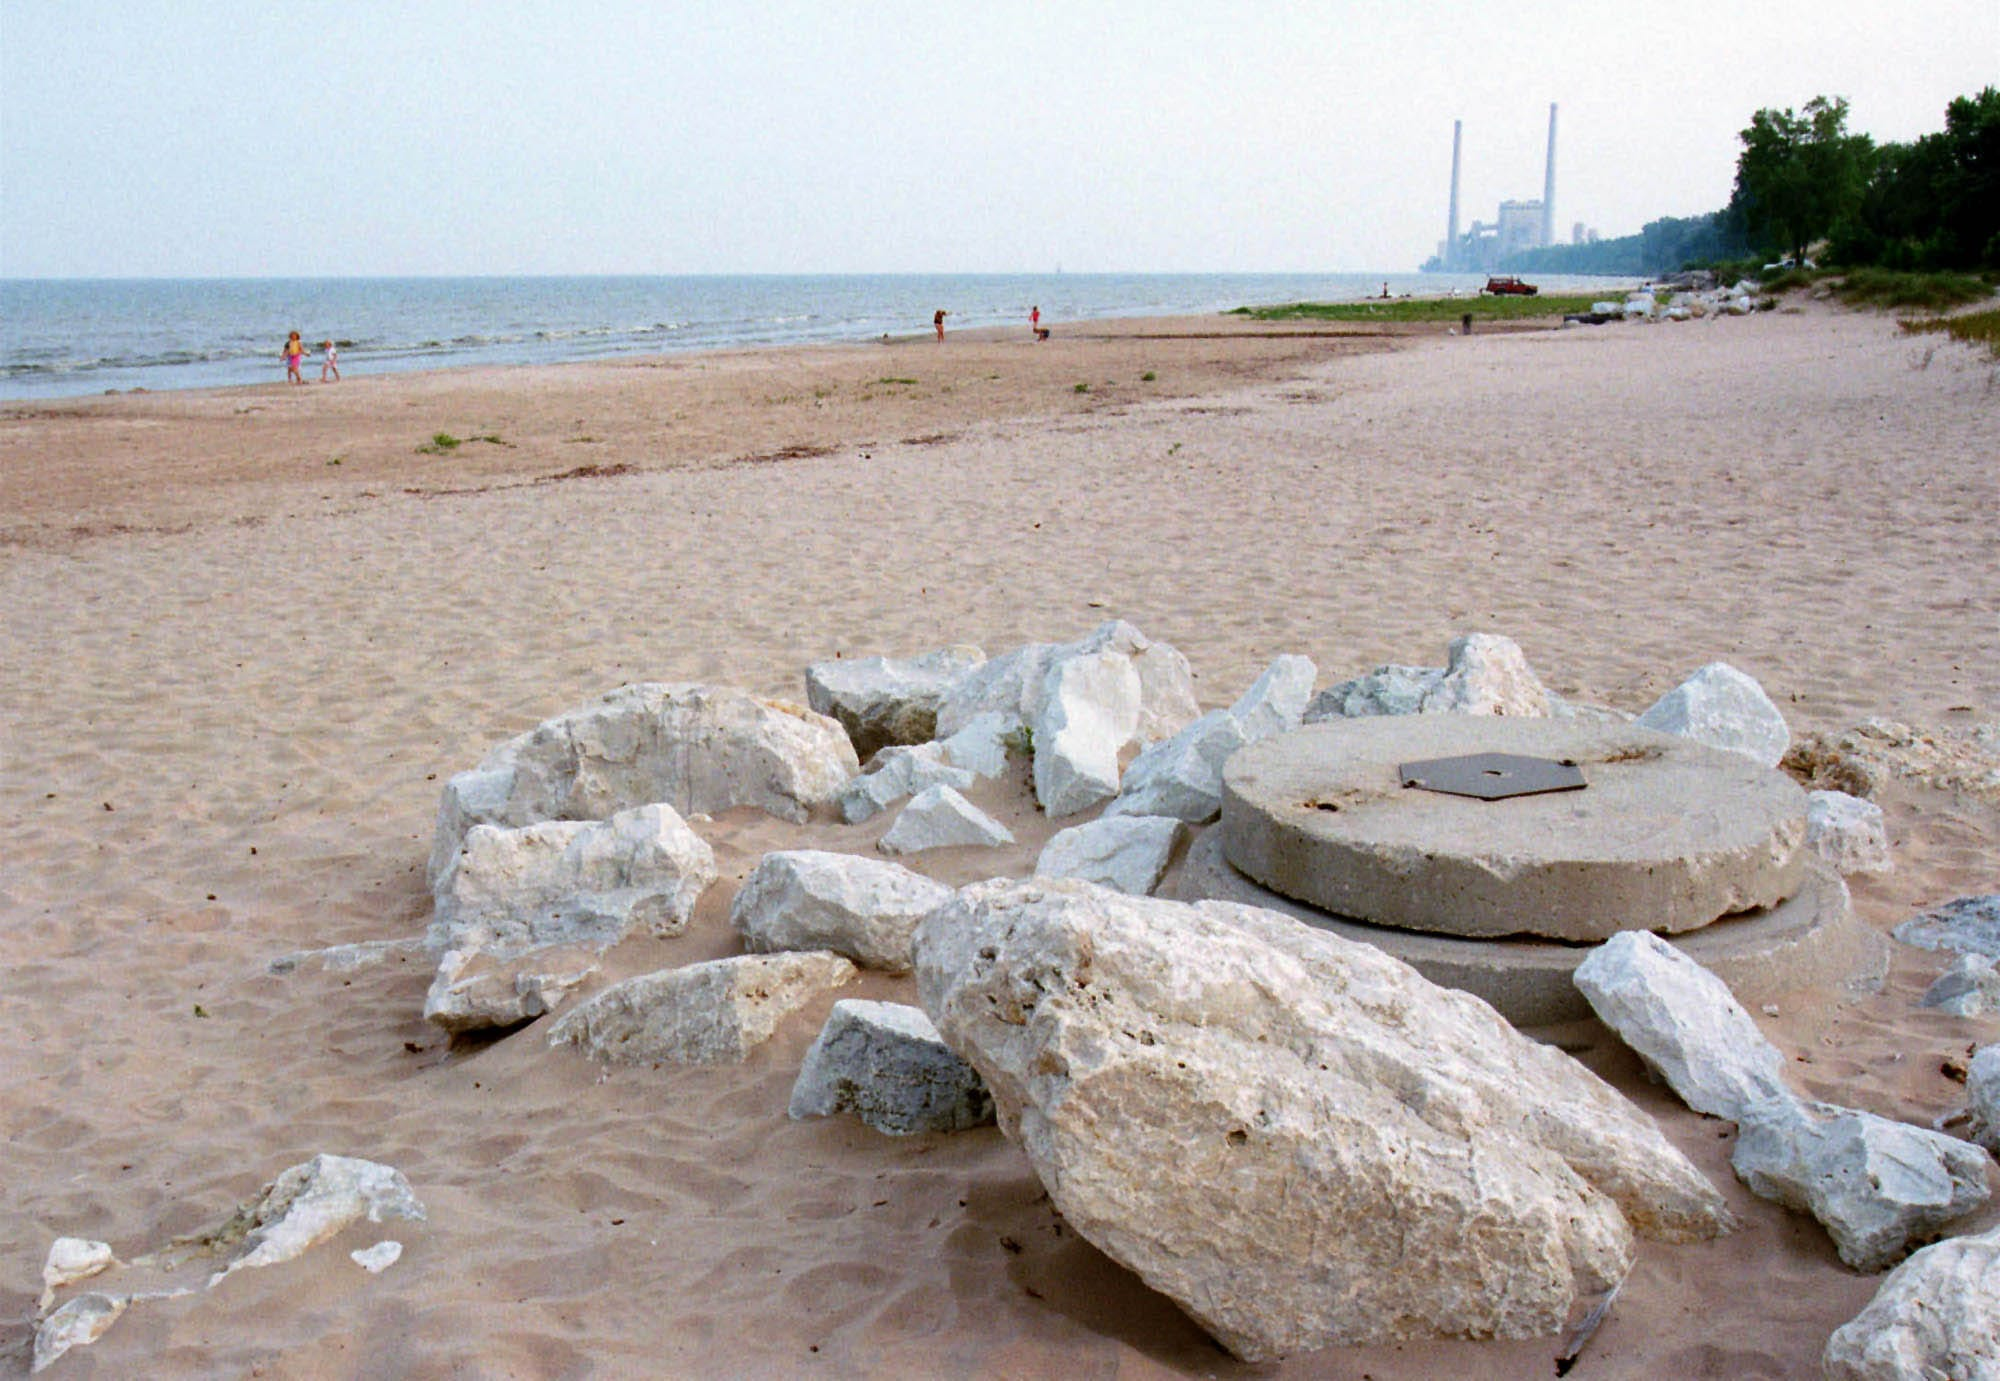 A Beach Scene From 1999 Shows Dramatically Lower Water Levels Than Lake Michigan In 2017 Near Sheboygan Wisconsin Have Surged